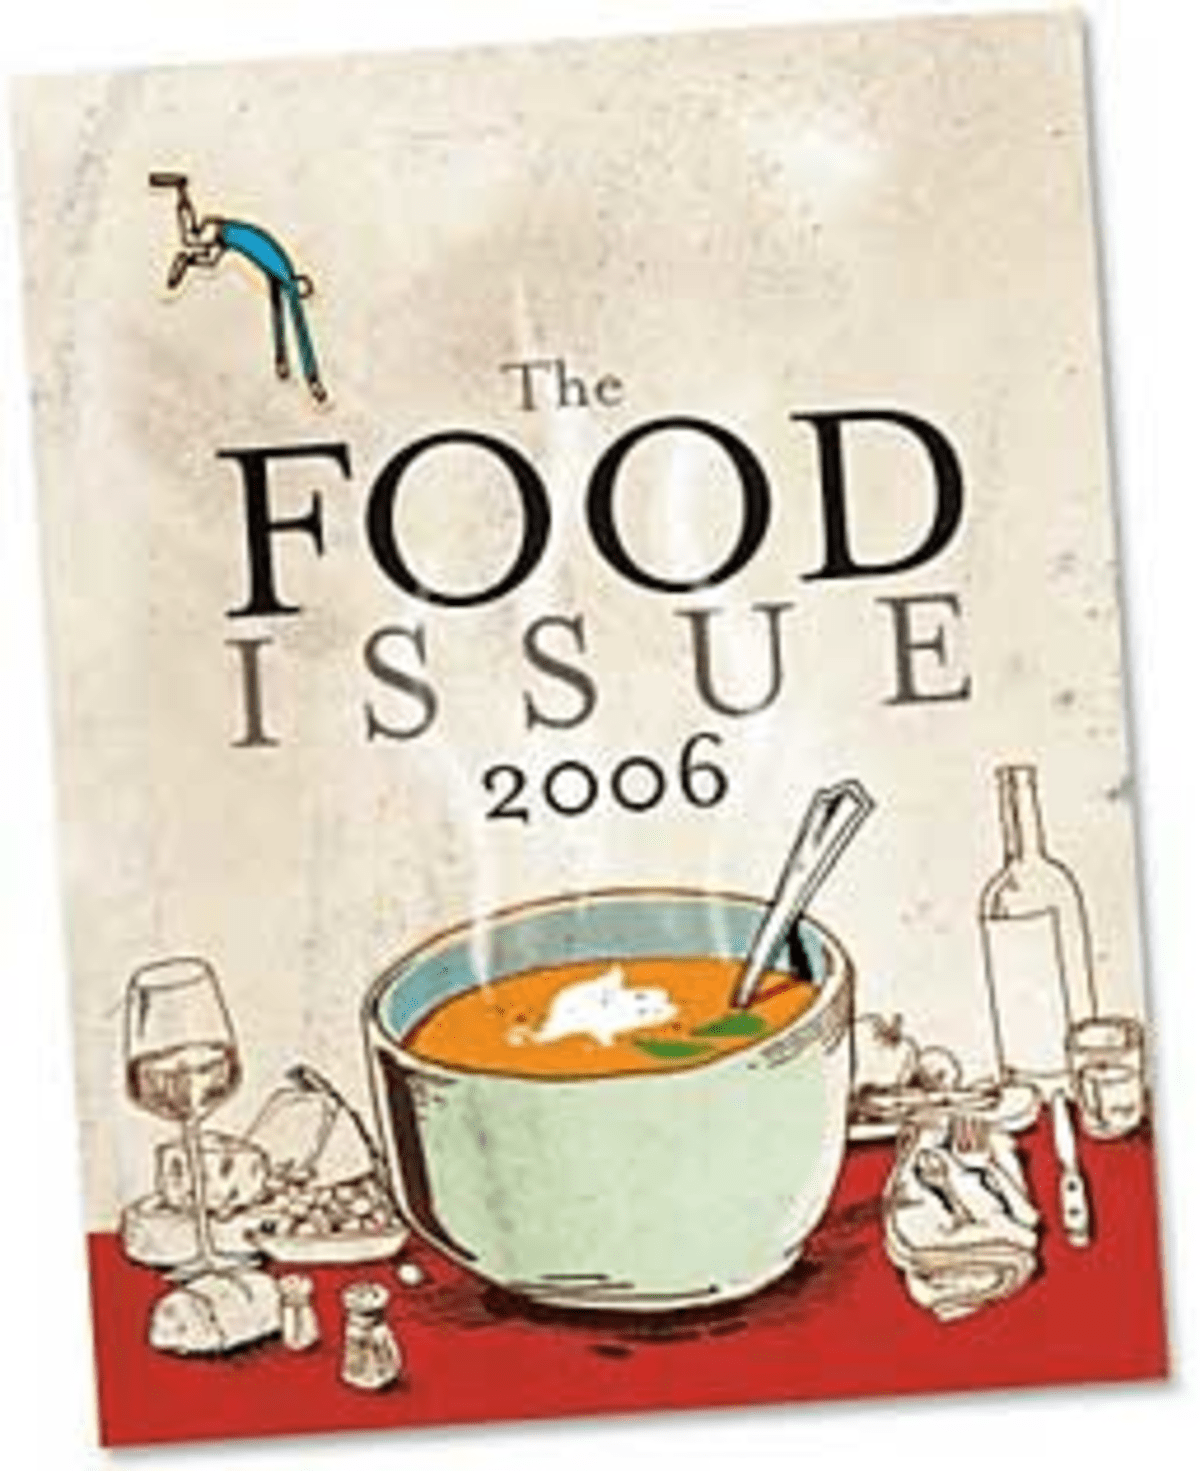 The October 27, 2006 Food Supplement